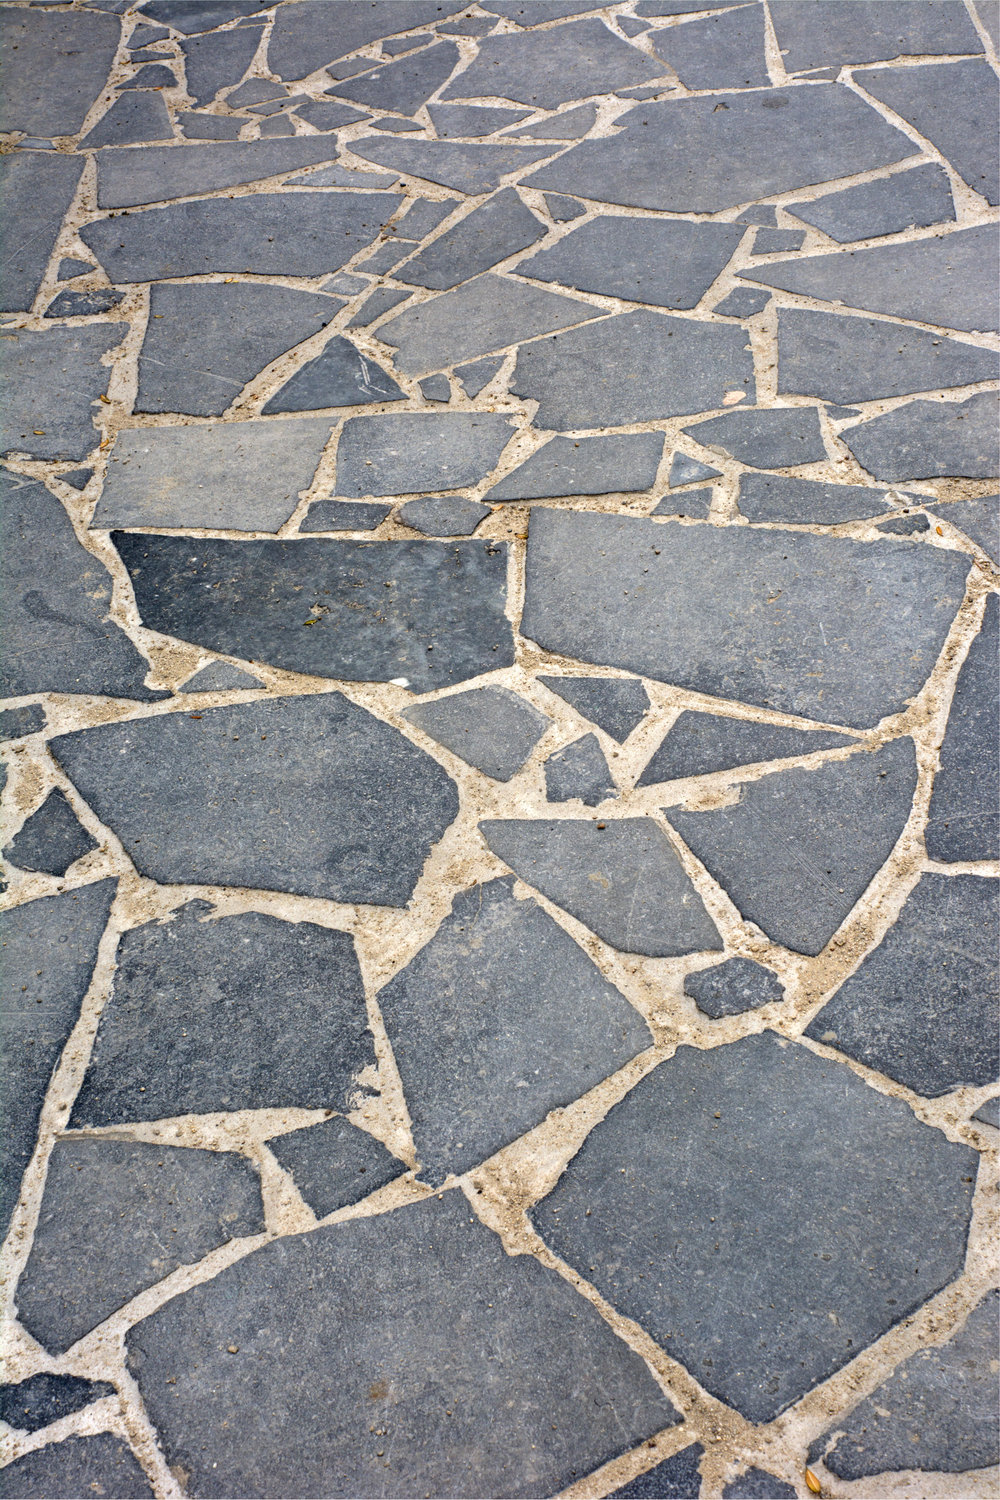 Reclaimed crazy paving